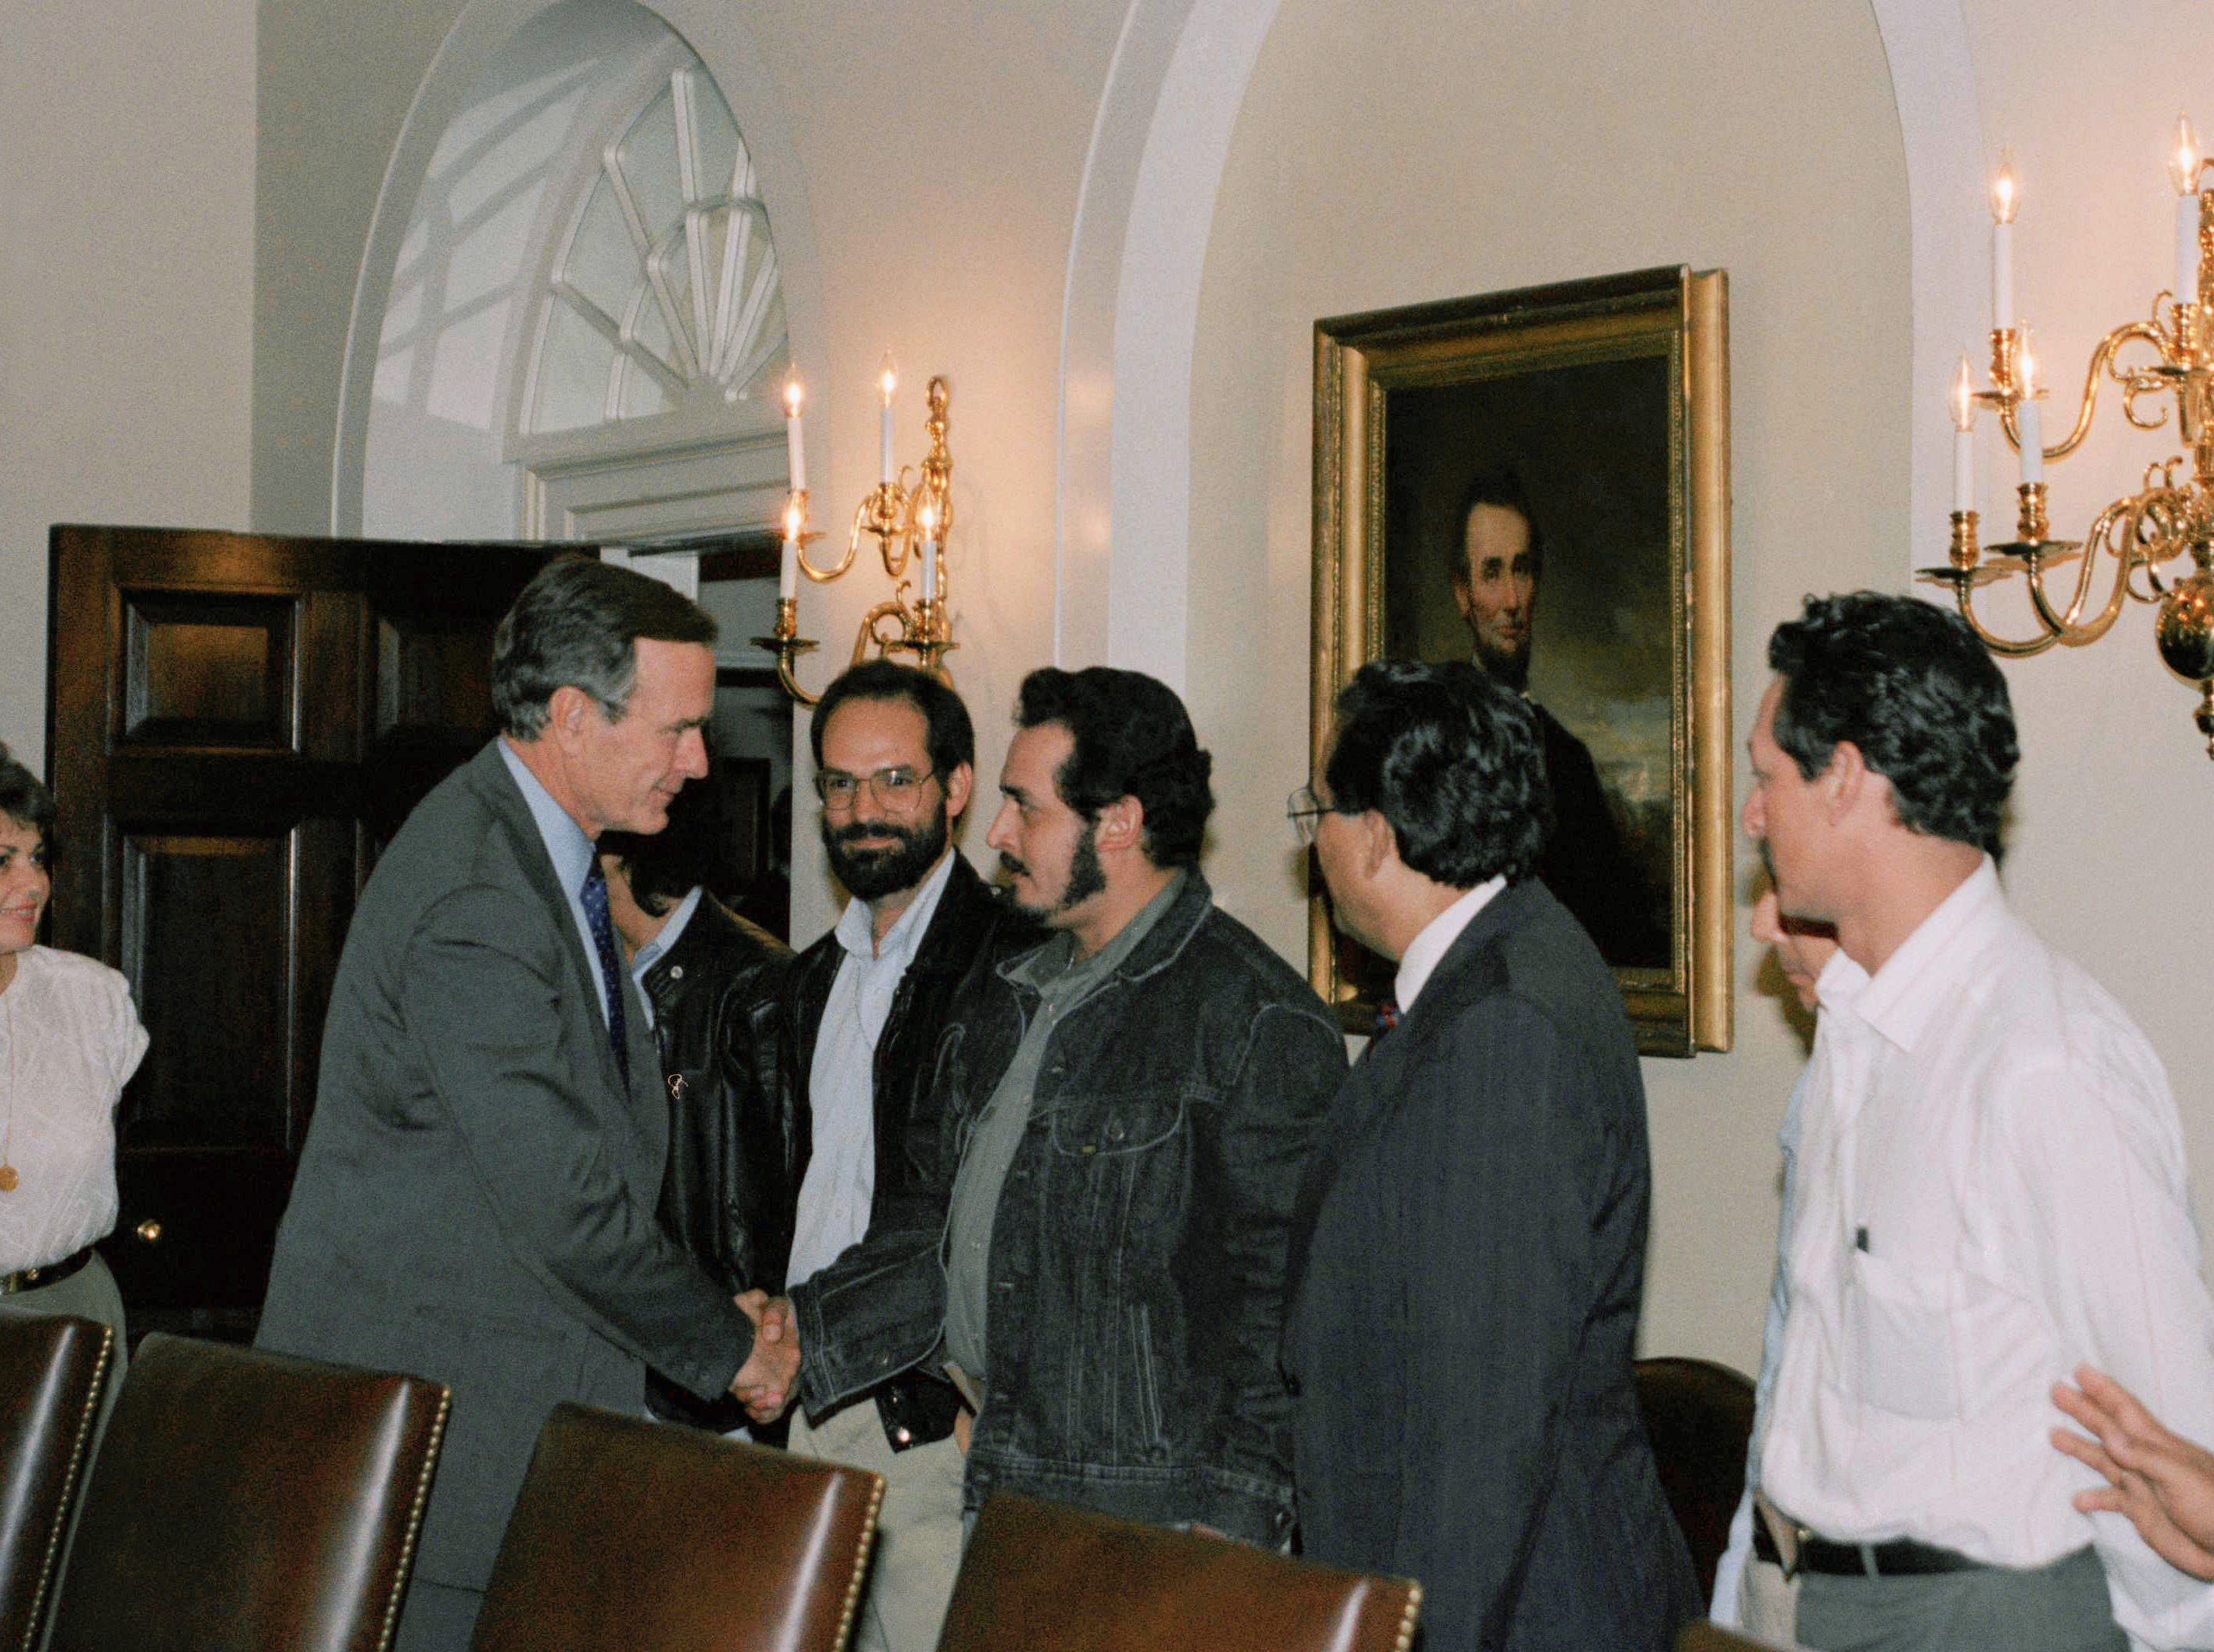 President George Bush meets with Contra leaders at the White House, Aug. 4, 1989 in Washington. From left with the president are Contra political adviser Xavier Arguello, Israel Galeano, the chief of staff of the Nicaraguan resistance's northern front, and Commanding General Enrique Bermudez. (AP Photo/Dennis Cook)